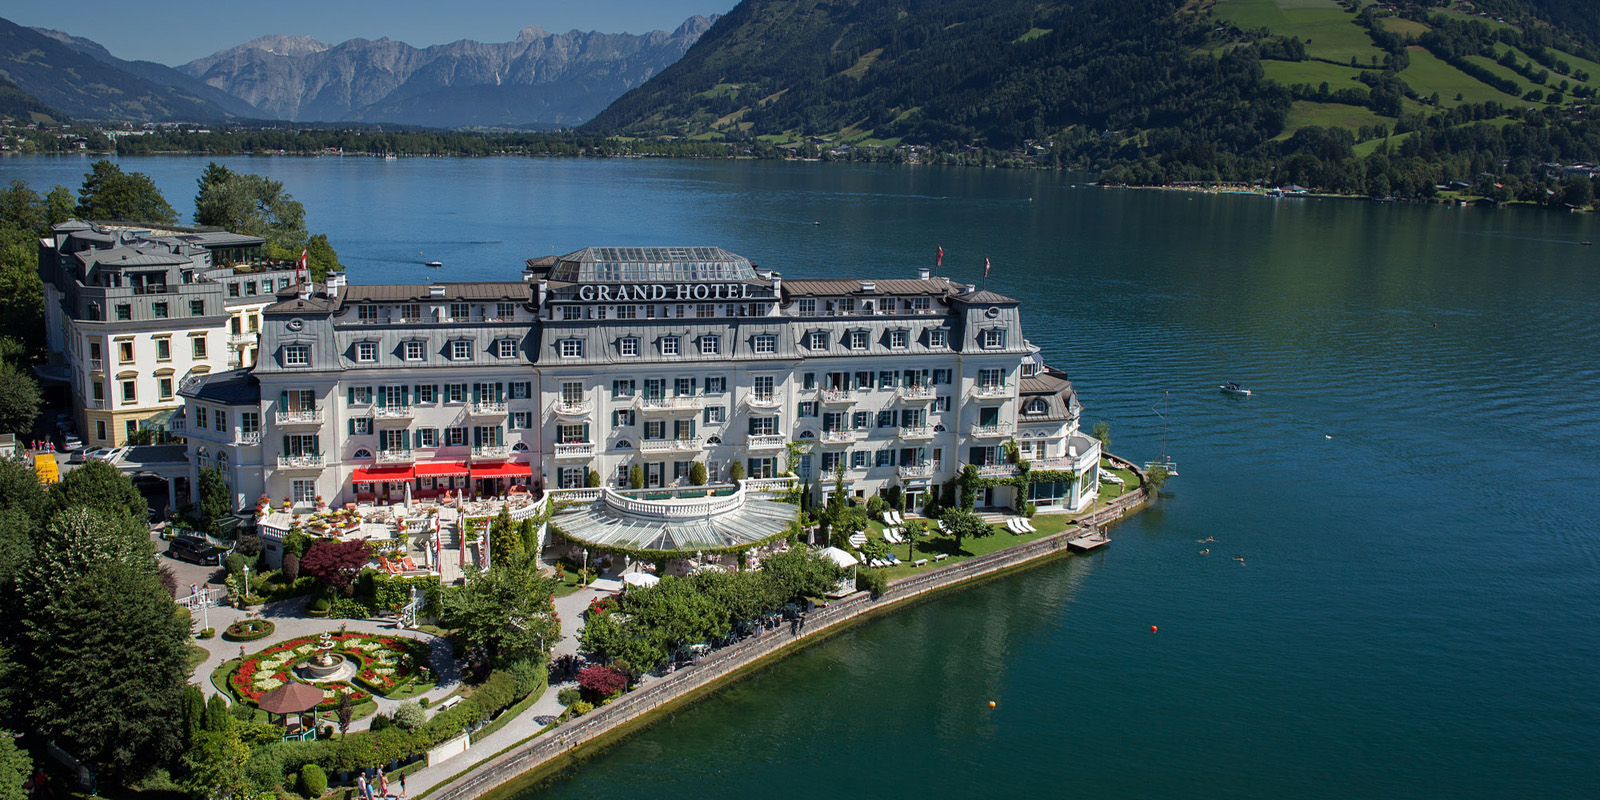 zell am see casino